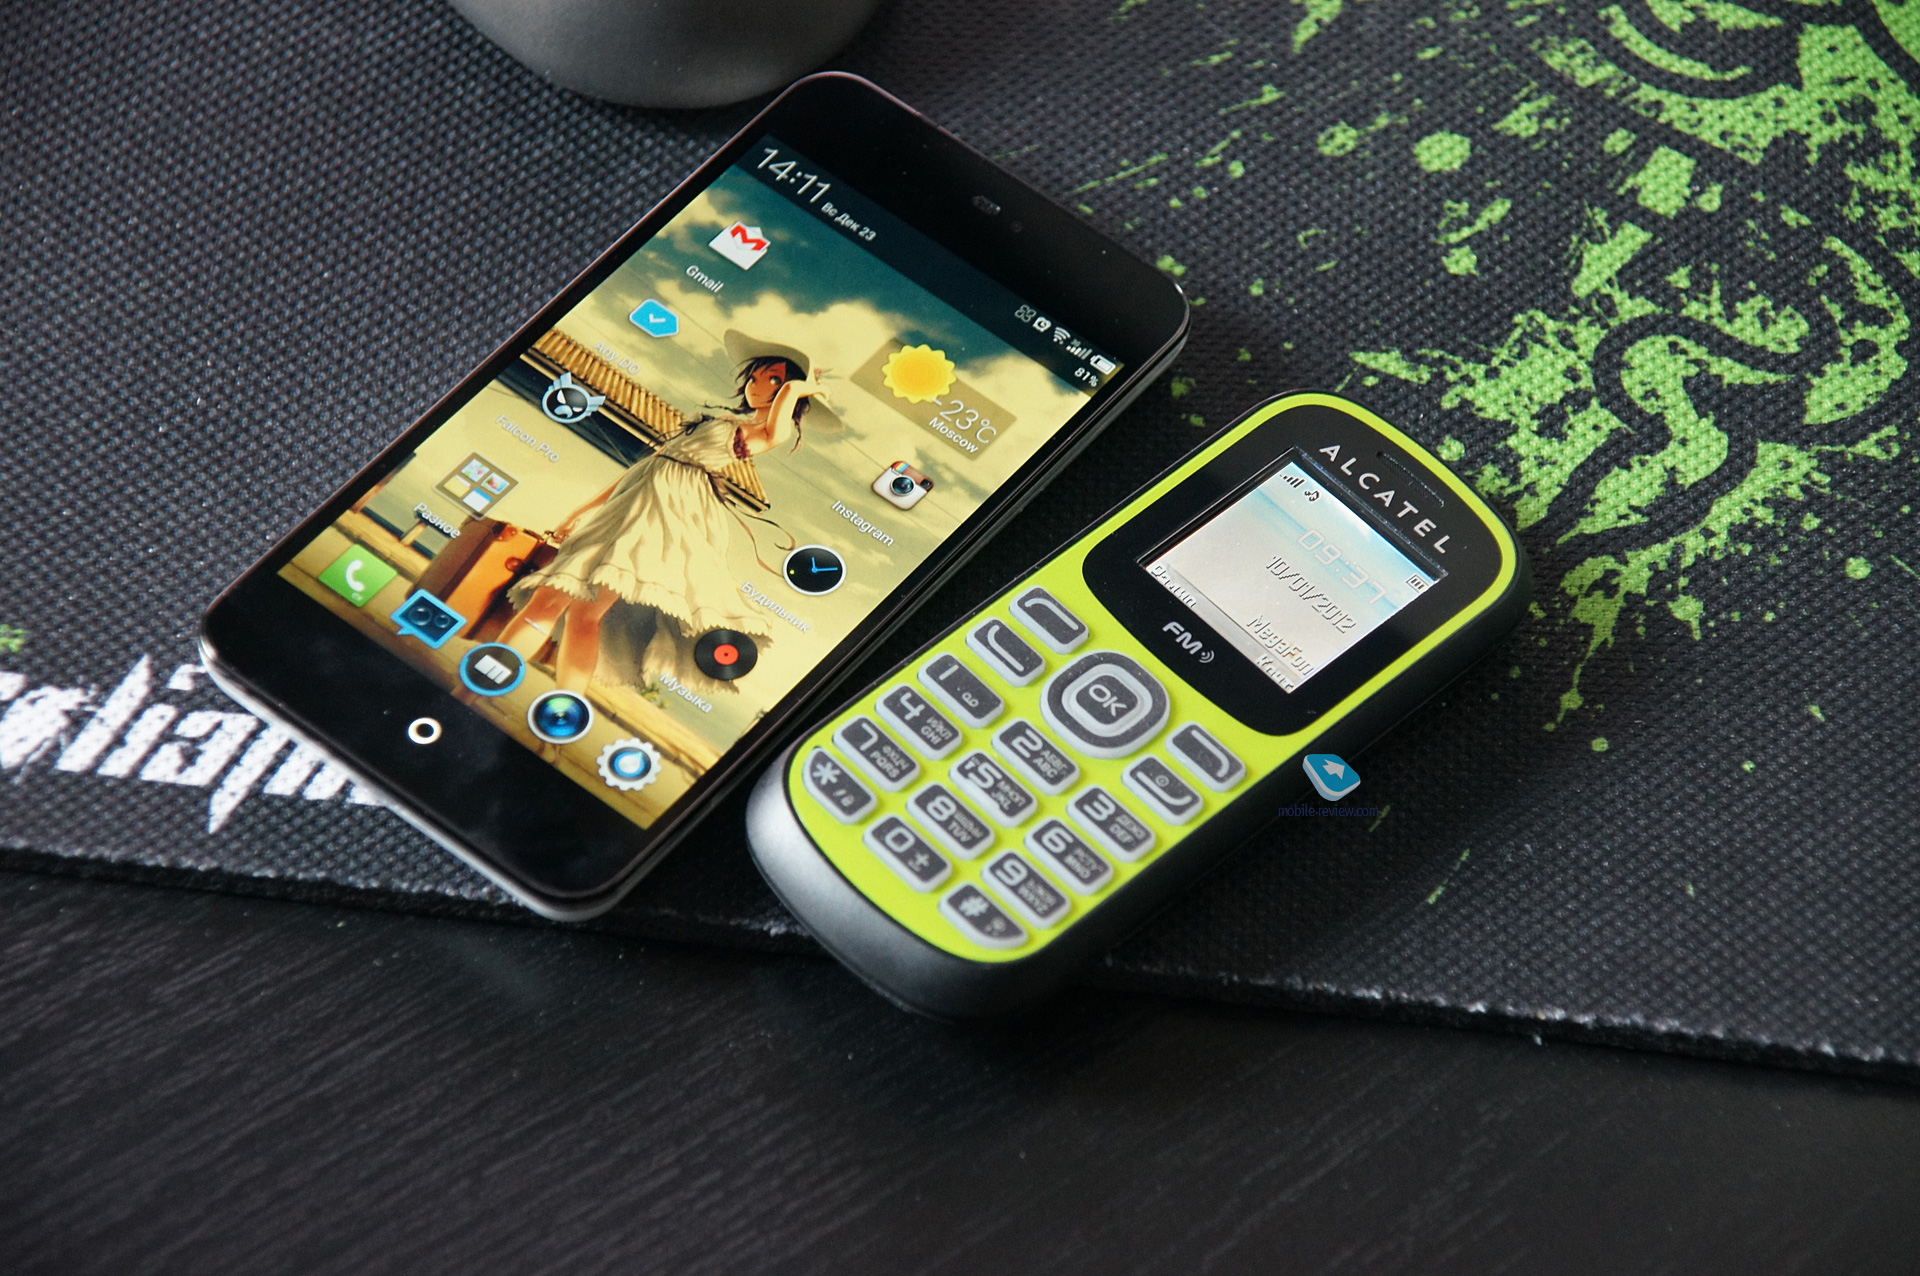 alcatel one touch 232 инструкция